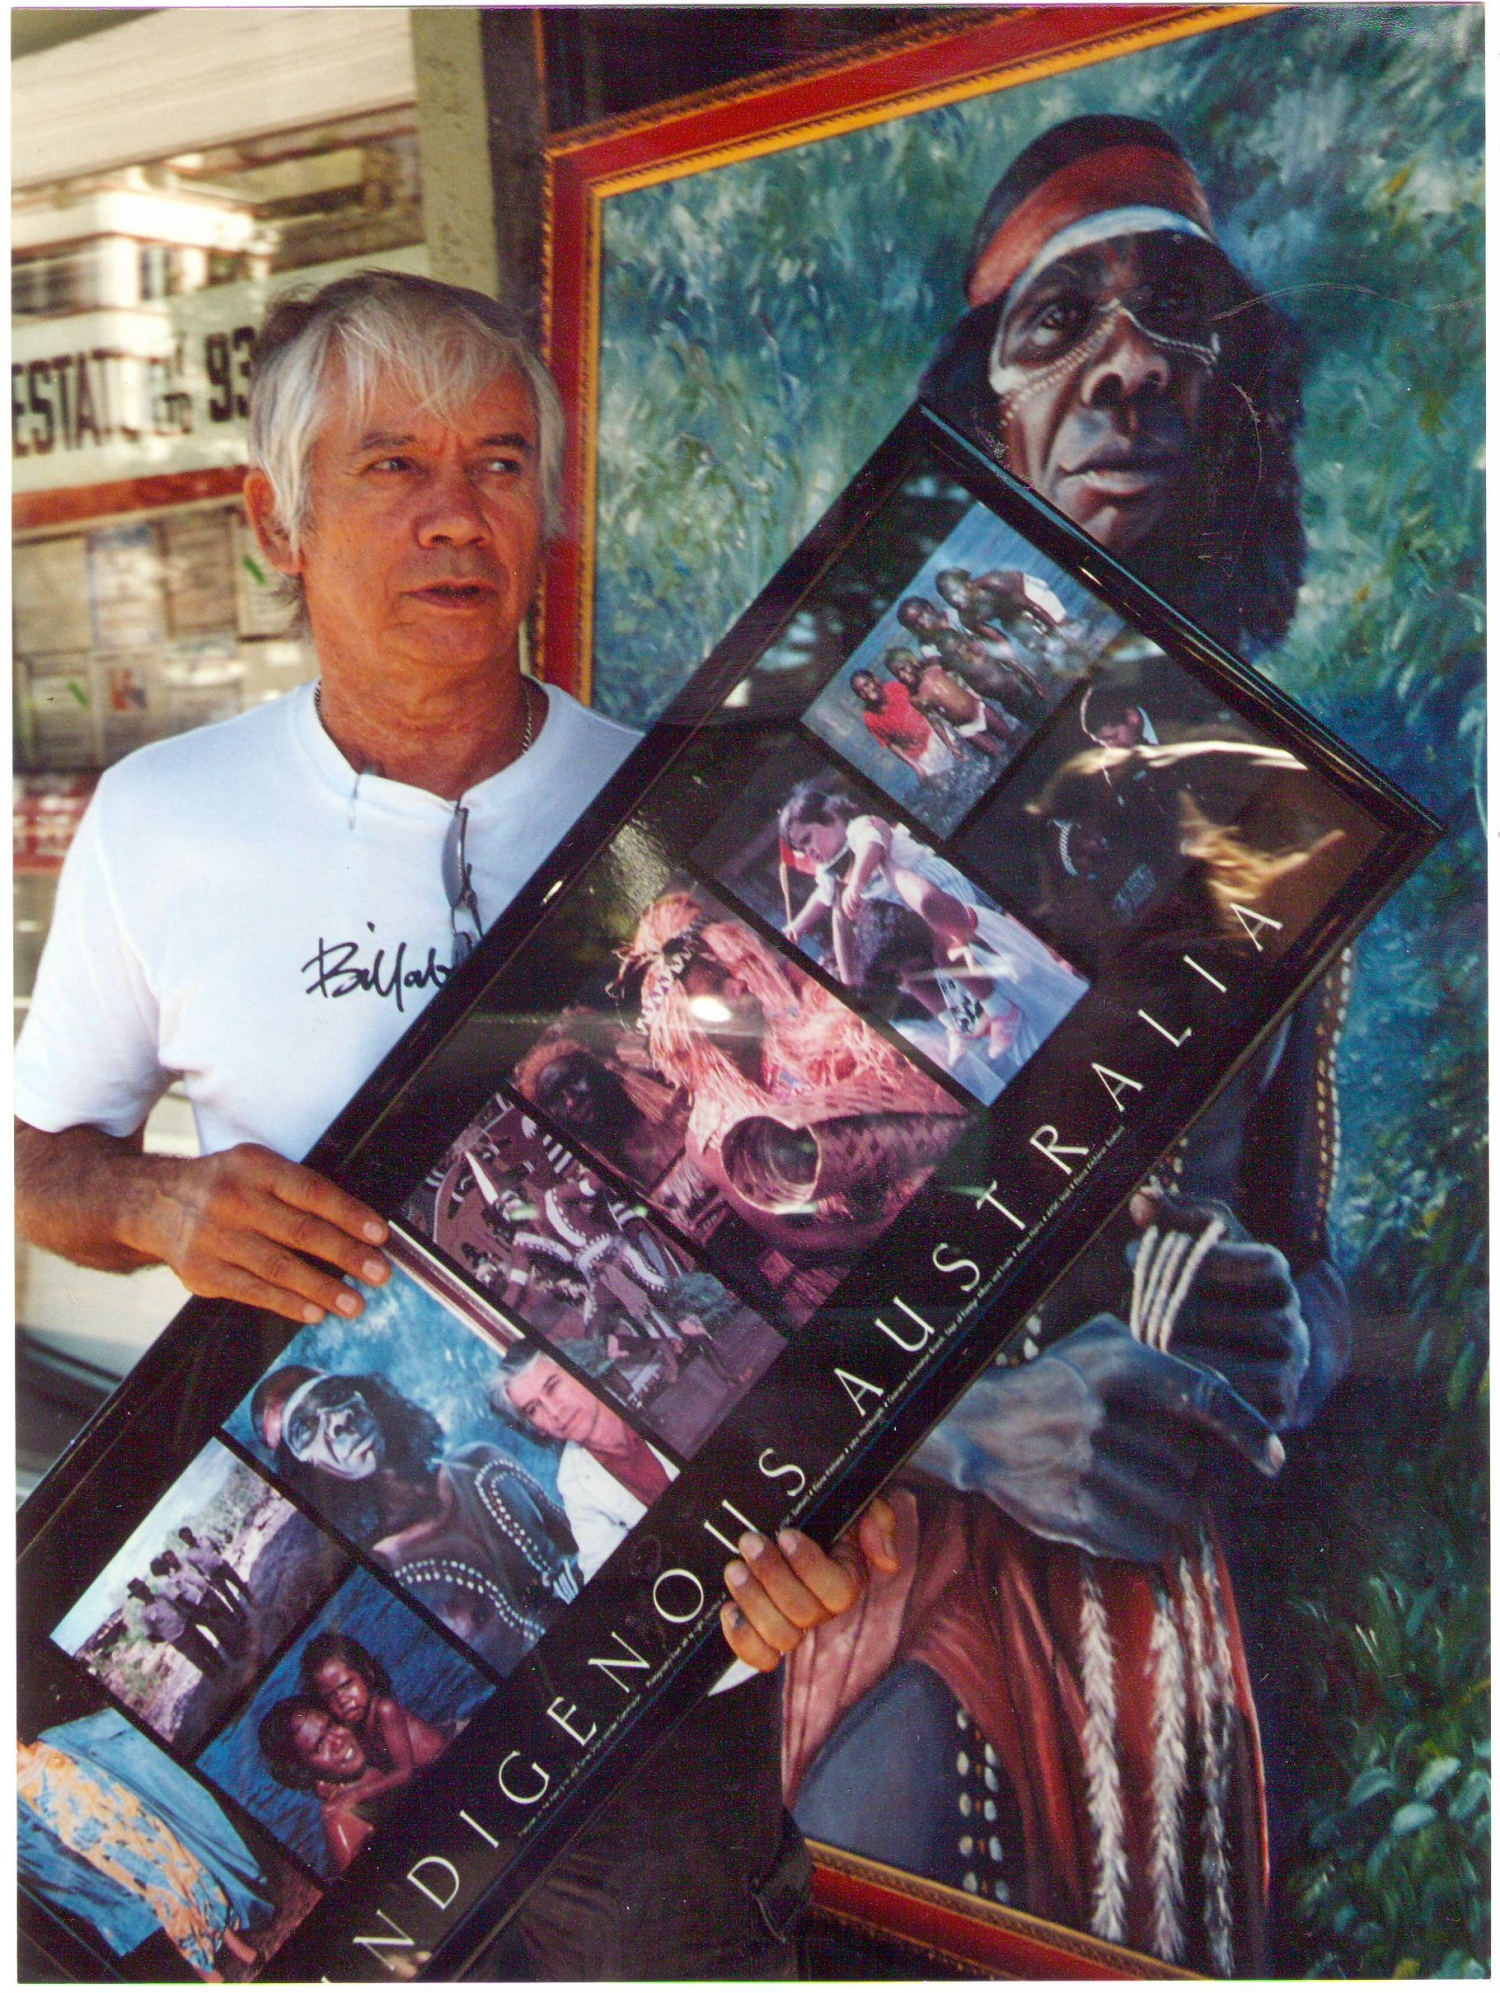 Man holding poster of artworks.